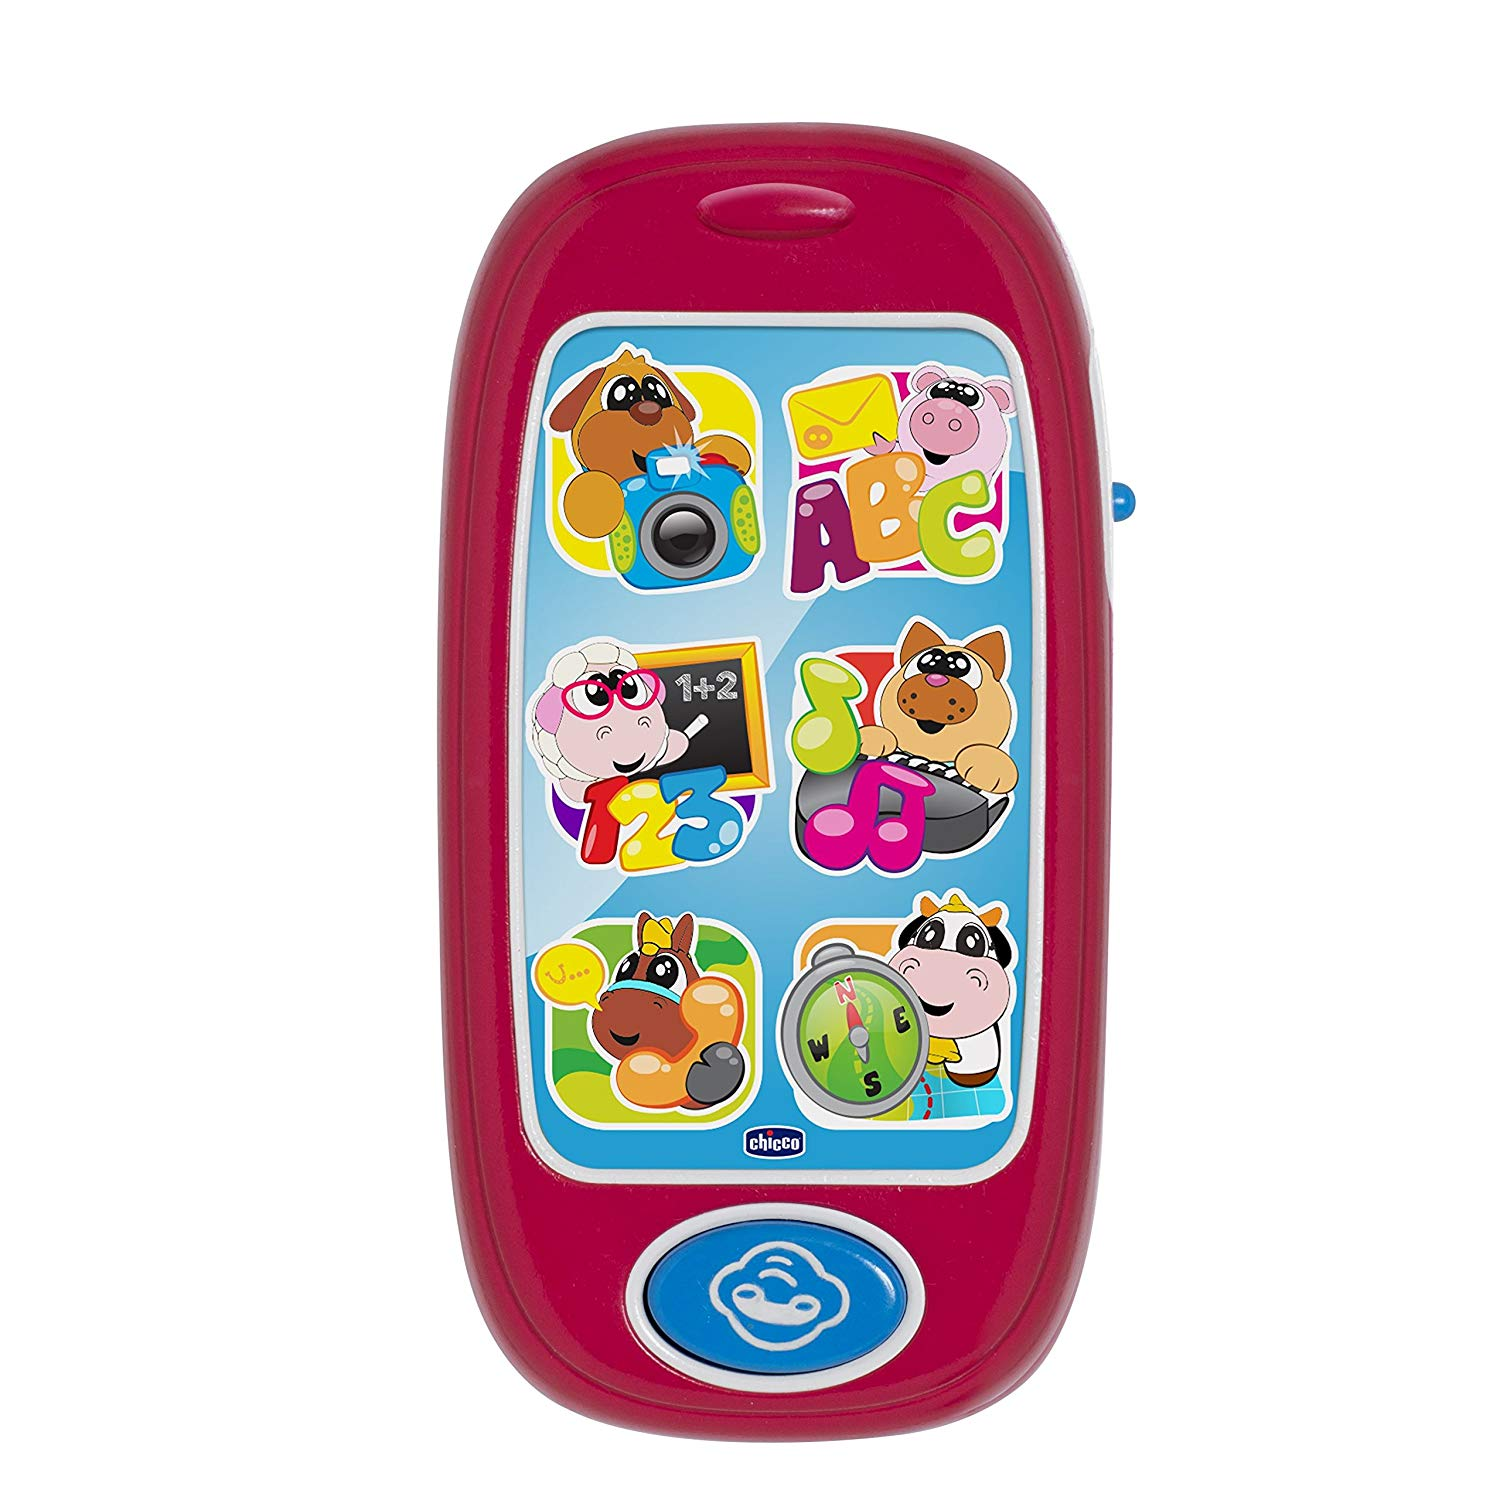 Chicco – Bilingual 7853000030 – My Mobile